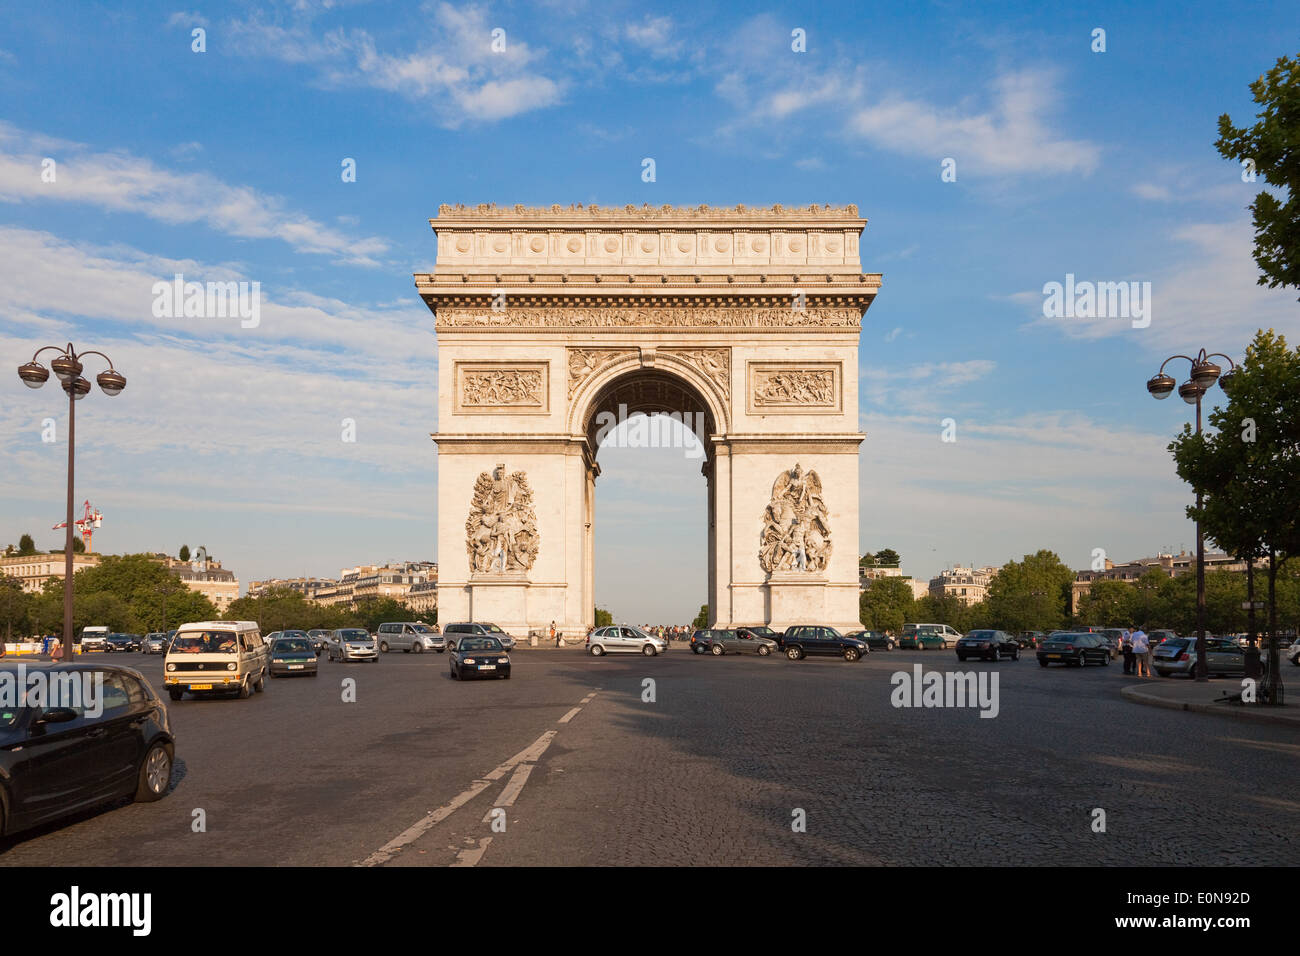 Arc de Triomphe an der Champs-Elysees, Paris, Frankreich - Arc de Triomphe at Champs-Elysees, France, Paris Stock Photo